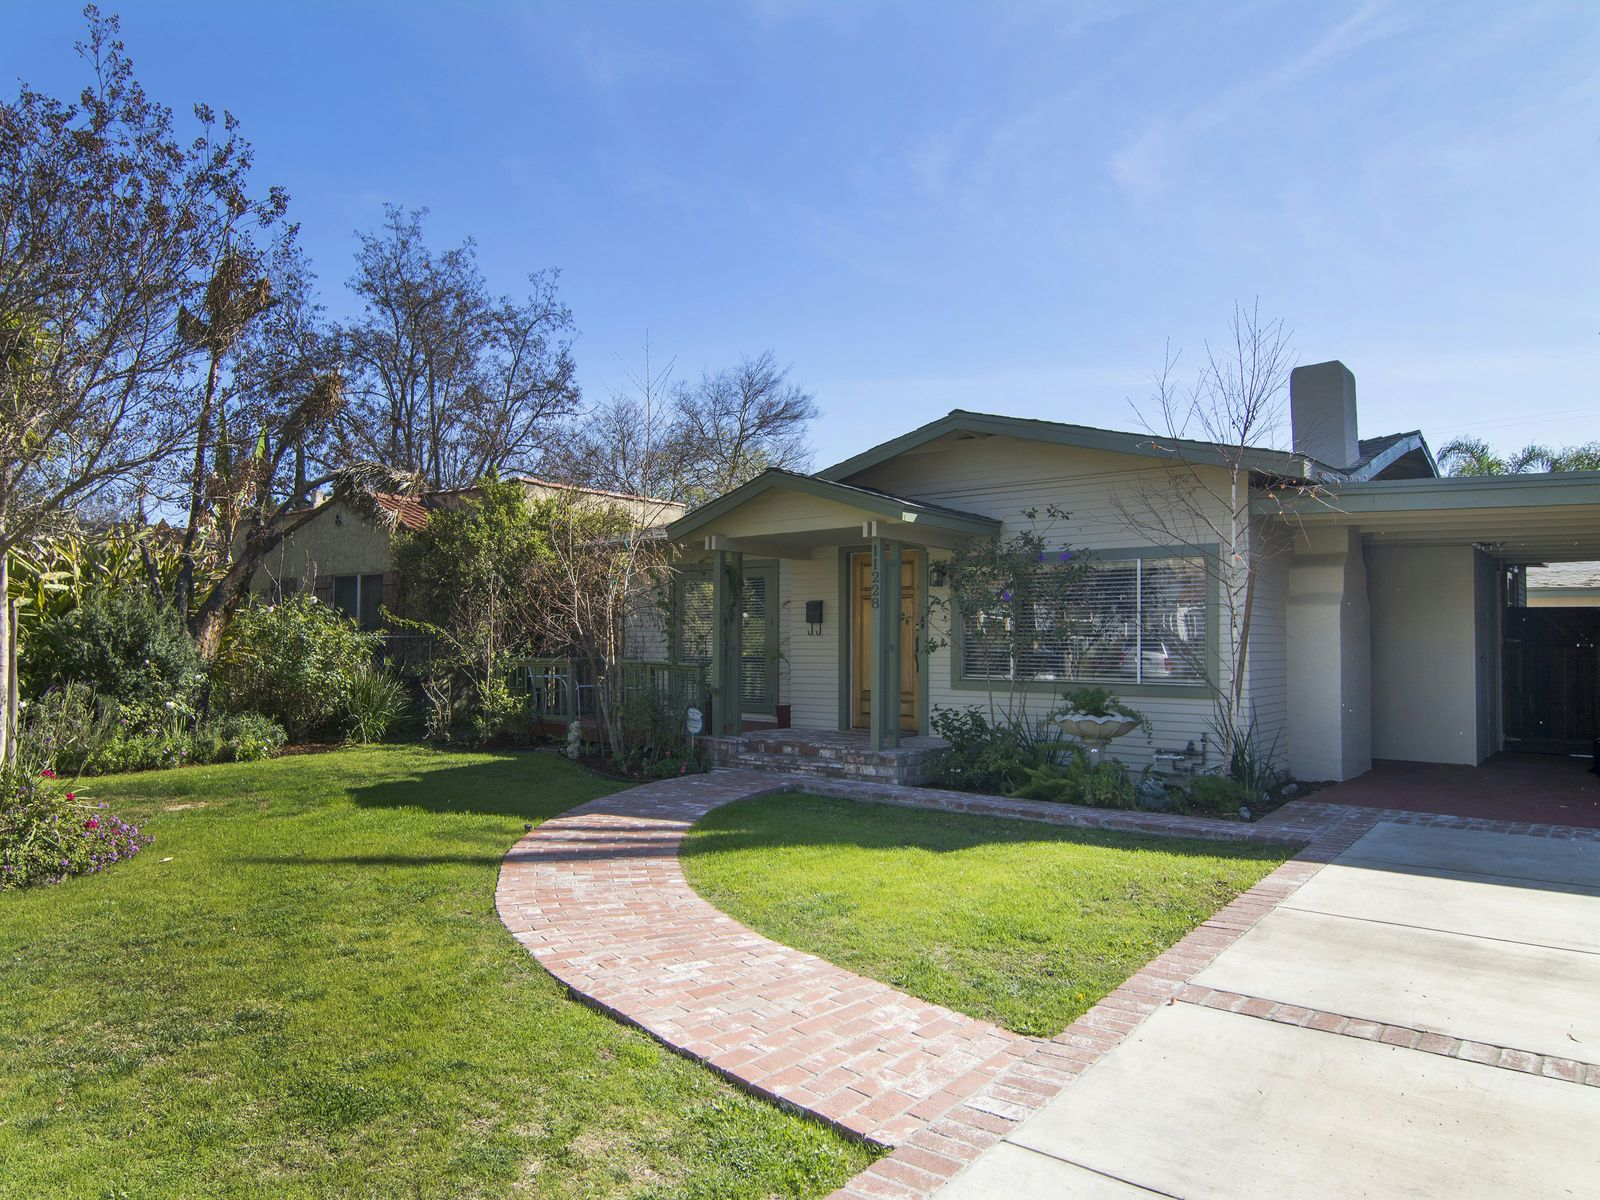 California craftsman like home west tolucla lake ca for California los angeles houses for sale